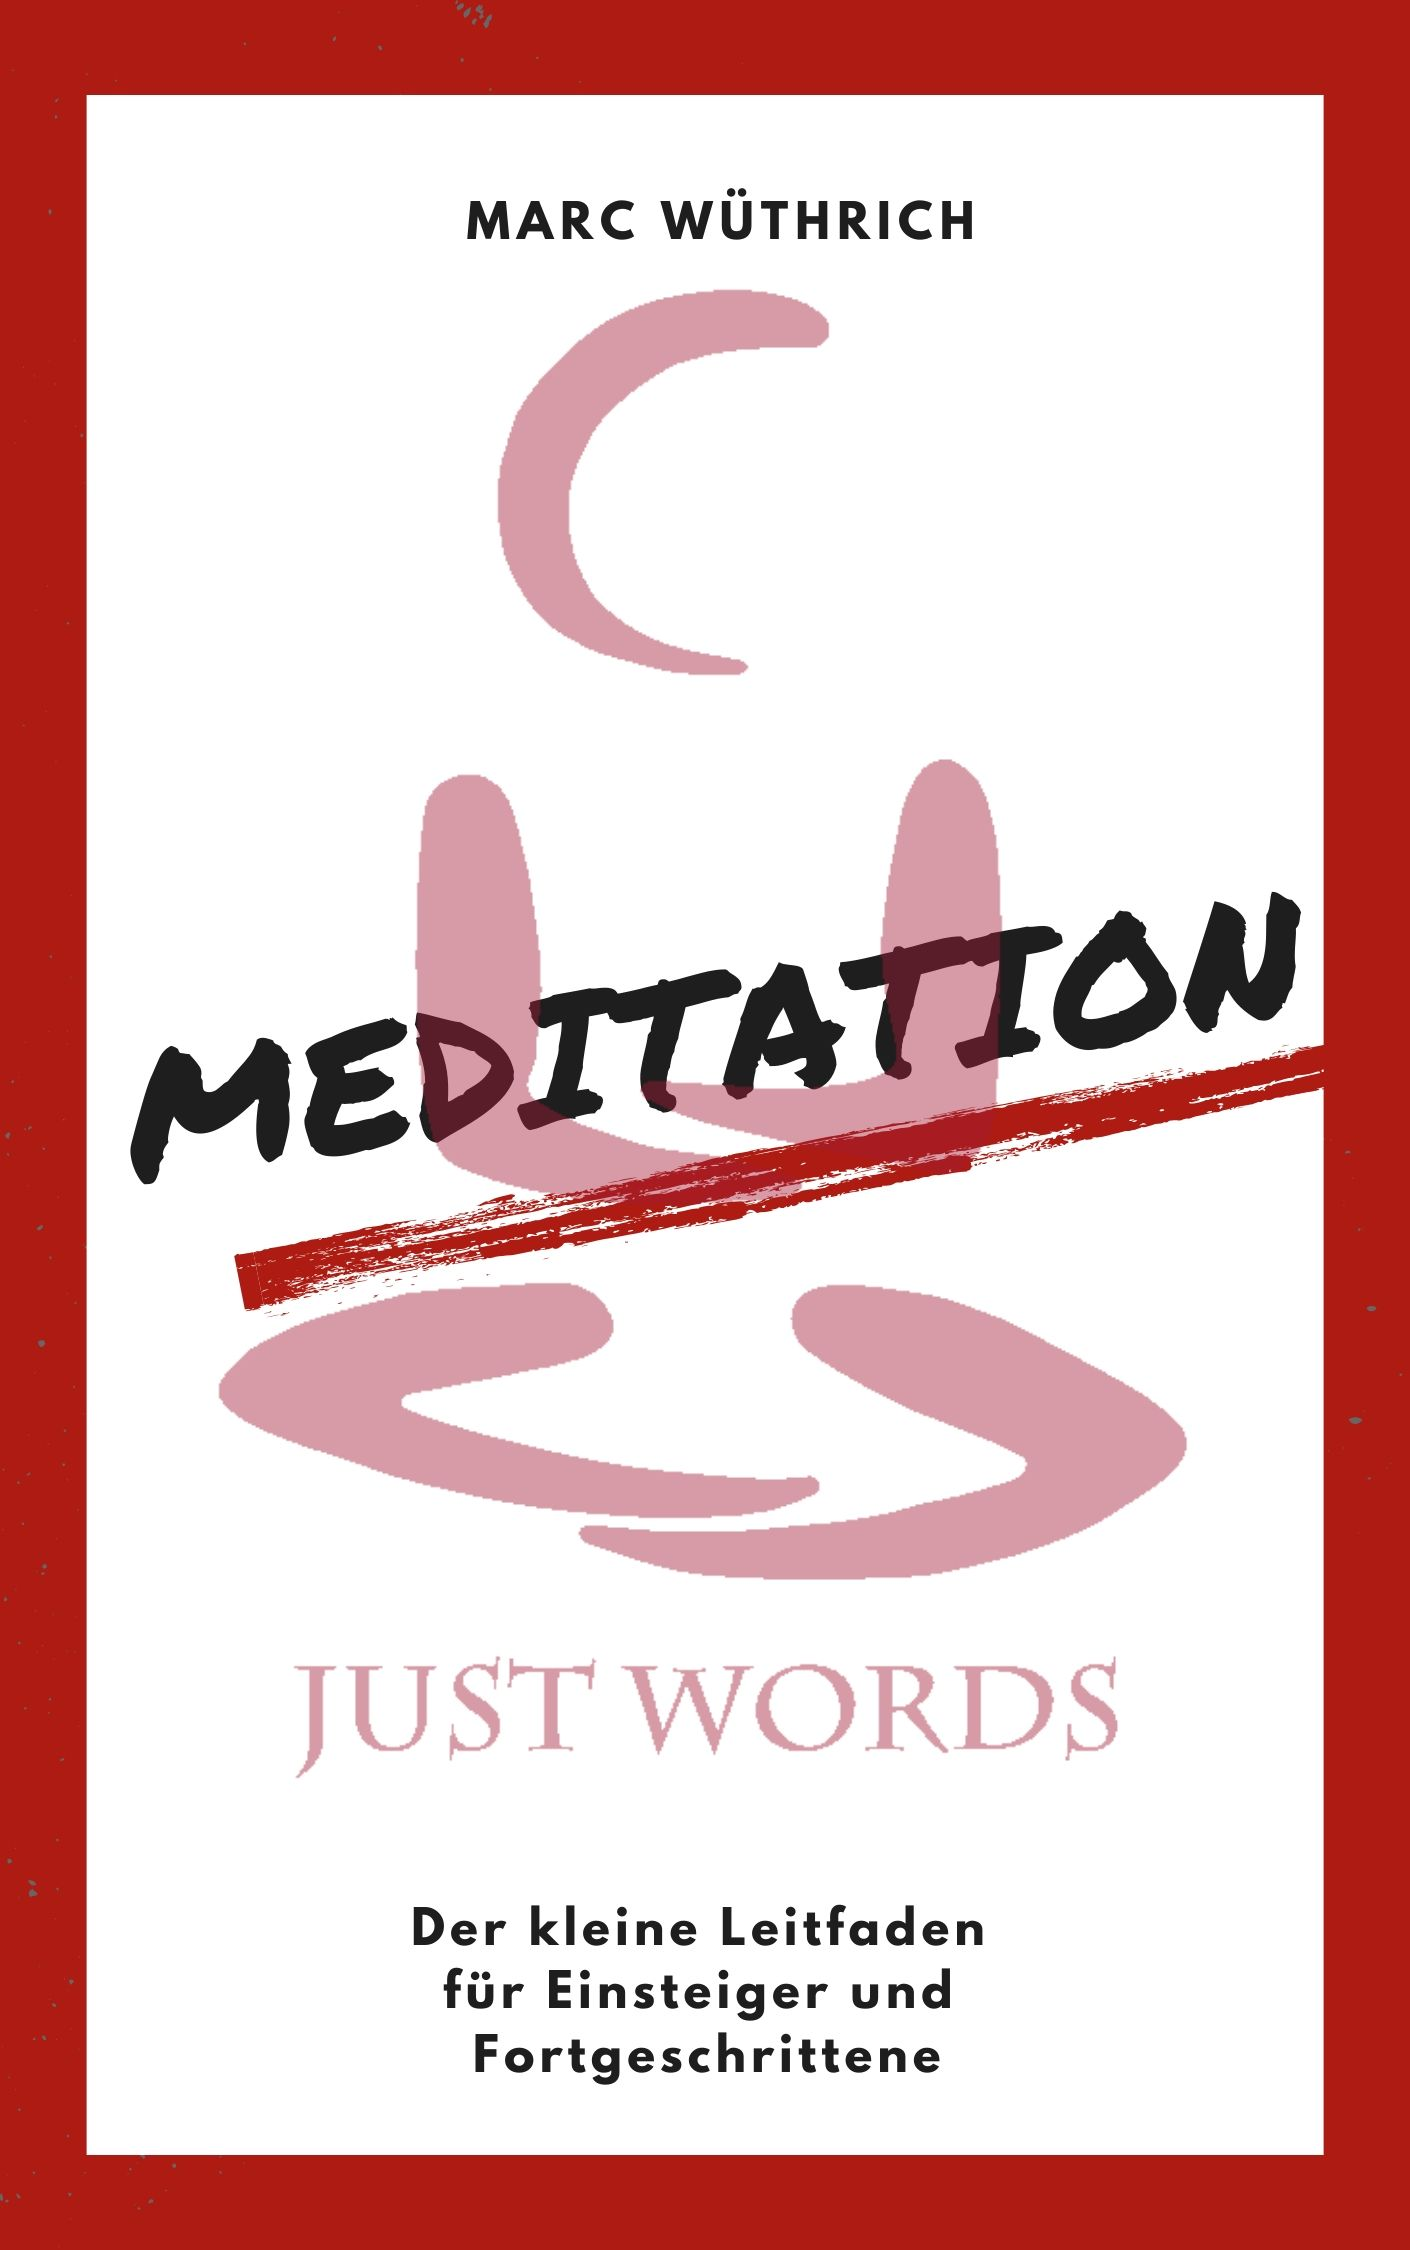 Just-Words-Meditation.jpg